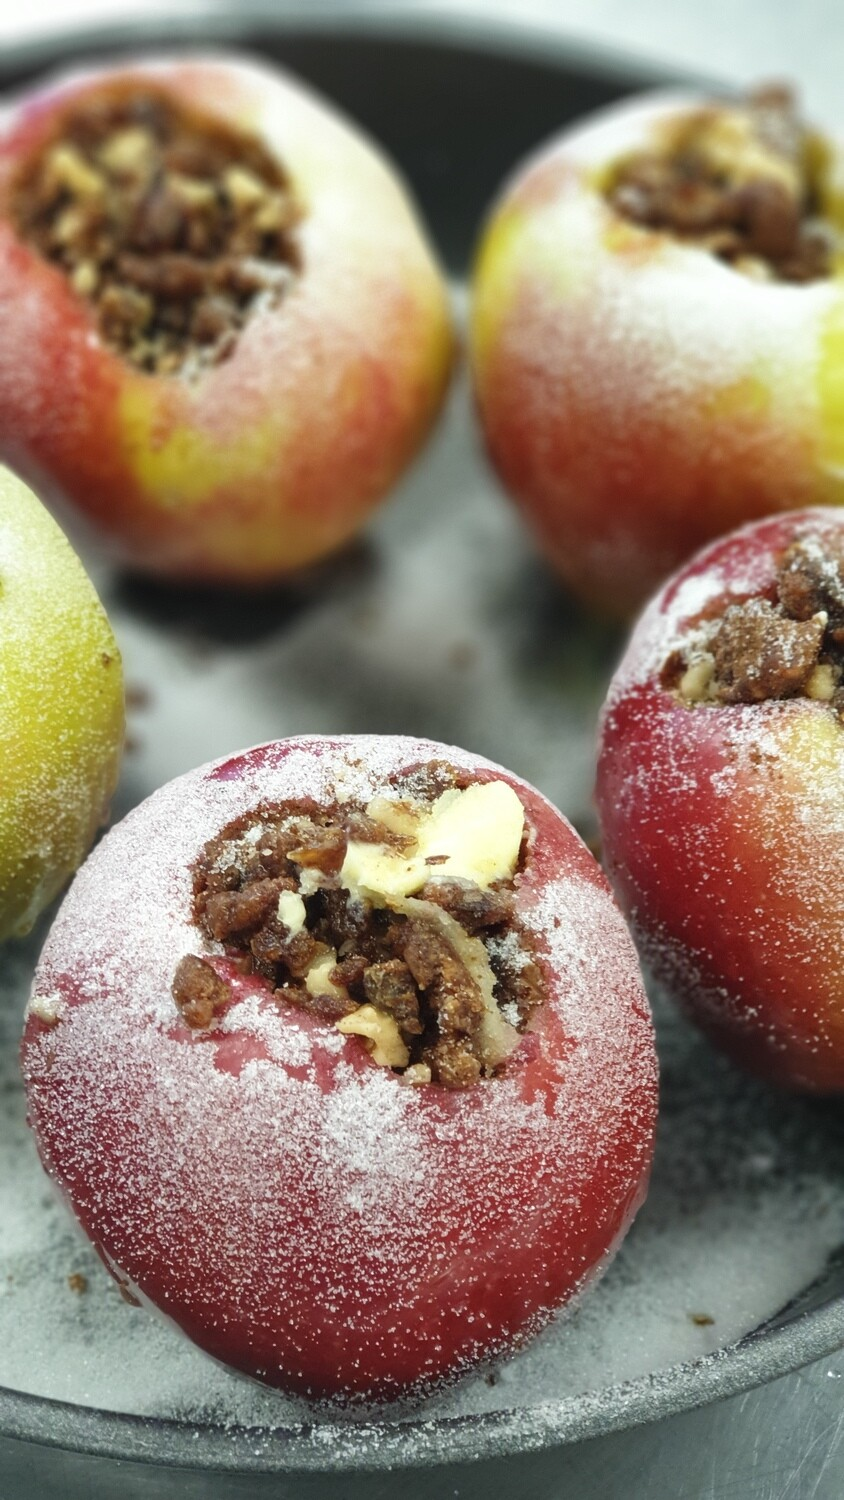 Baked apples with dates and walnuts